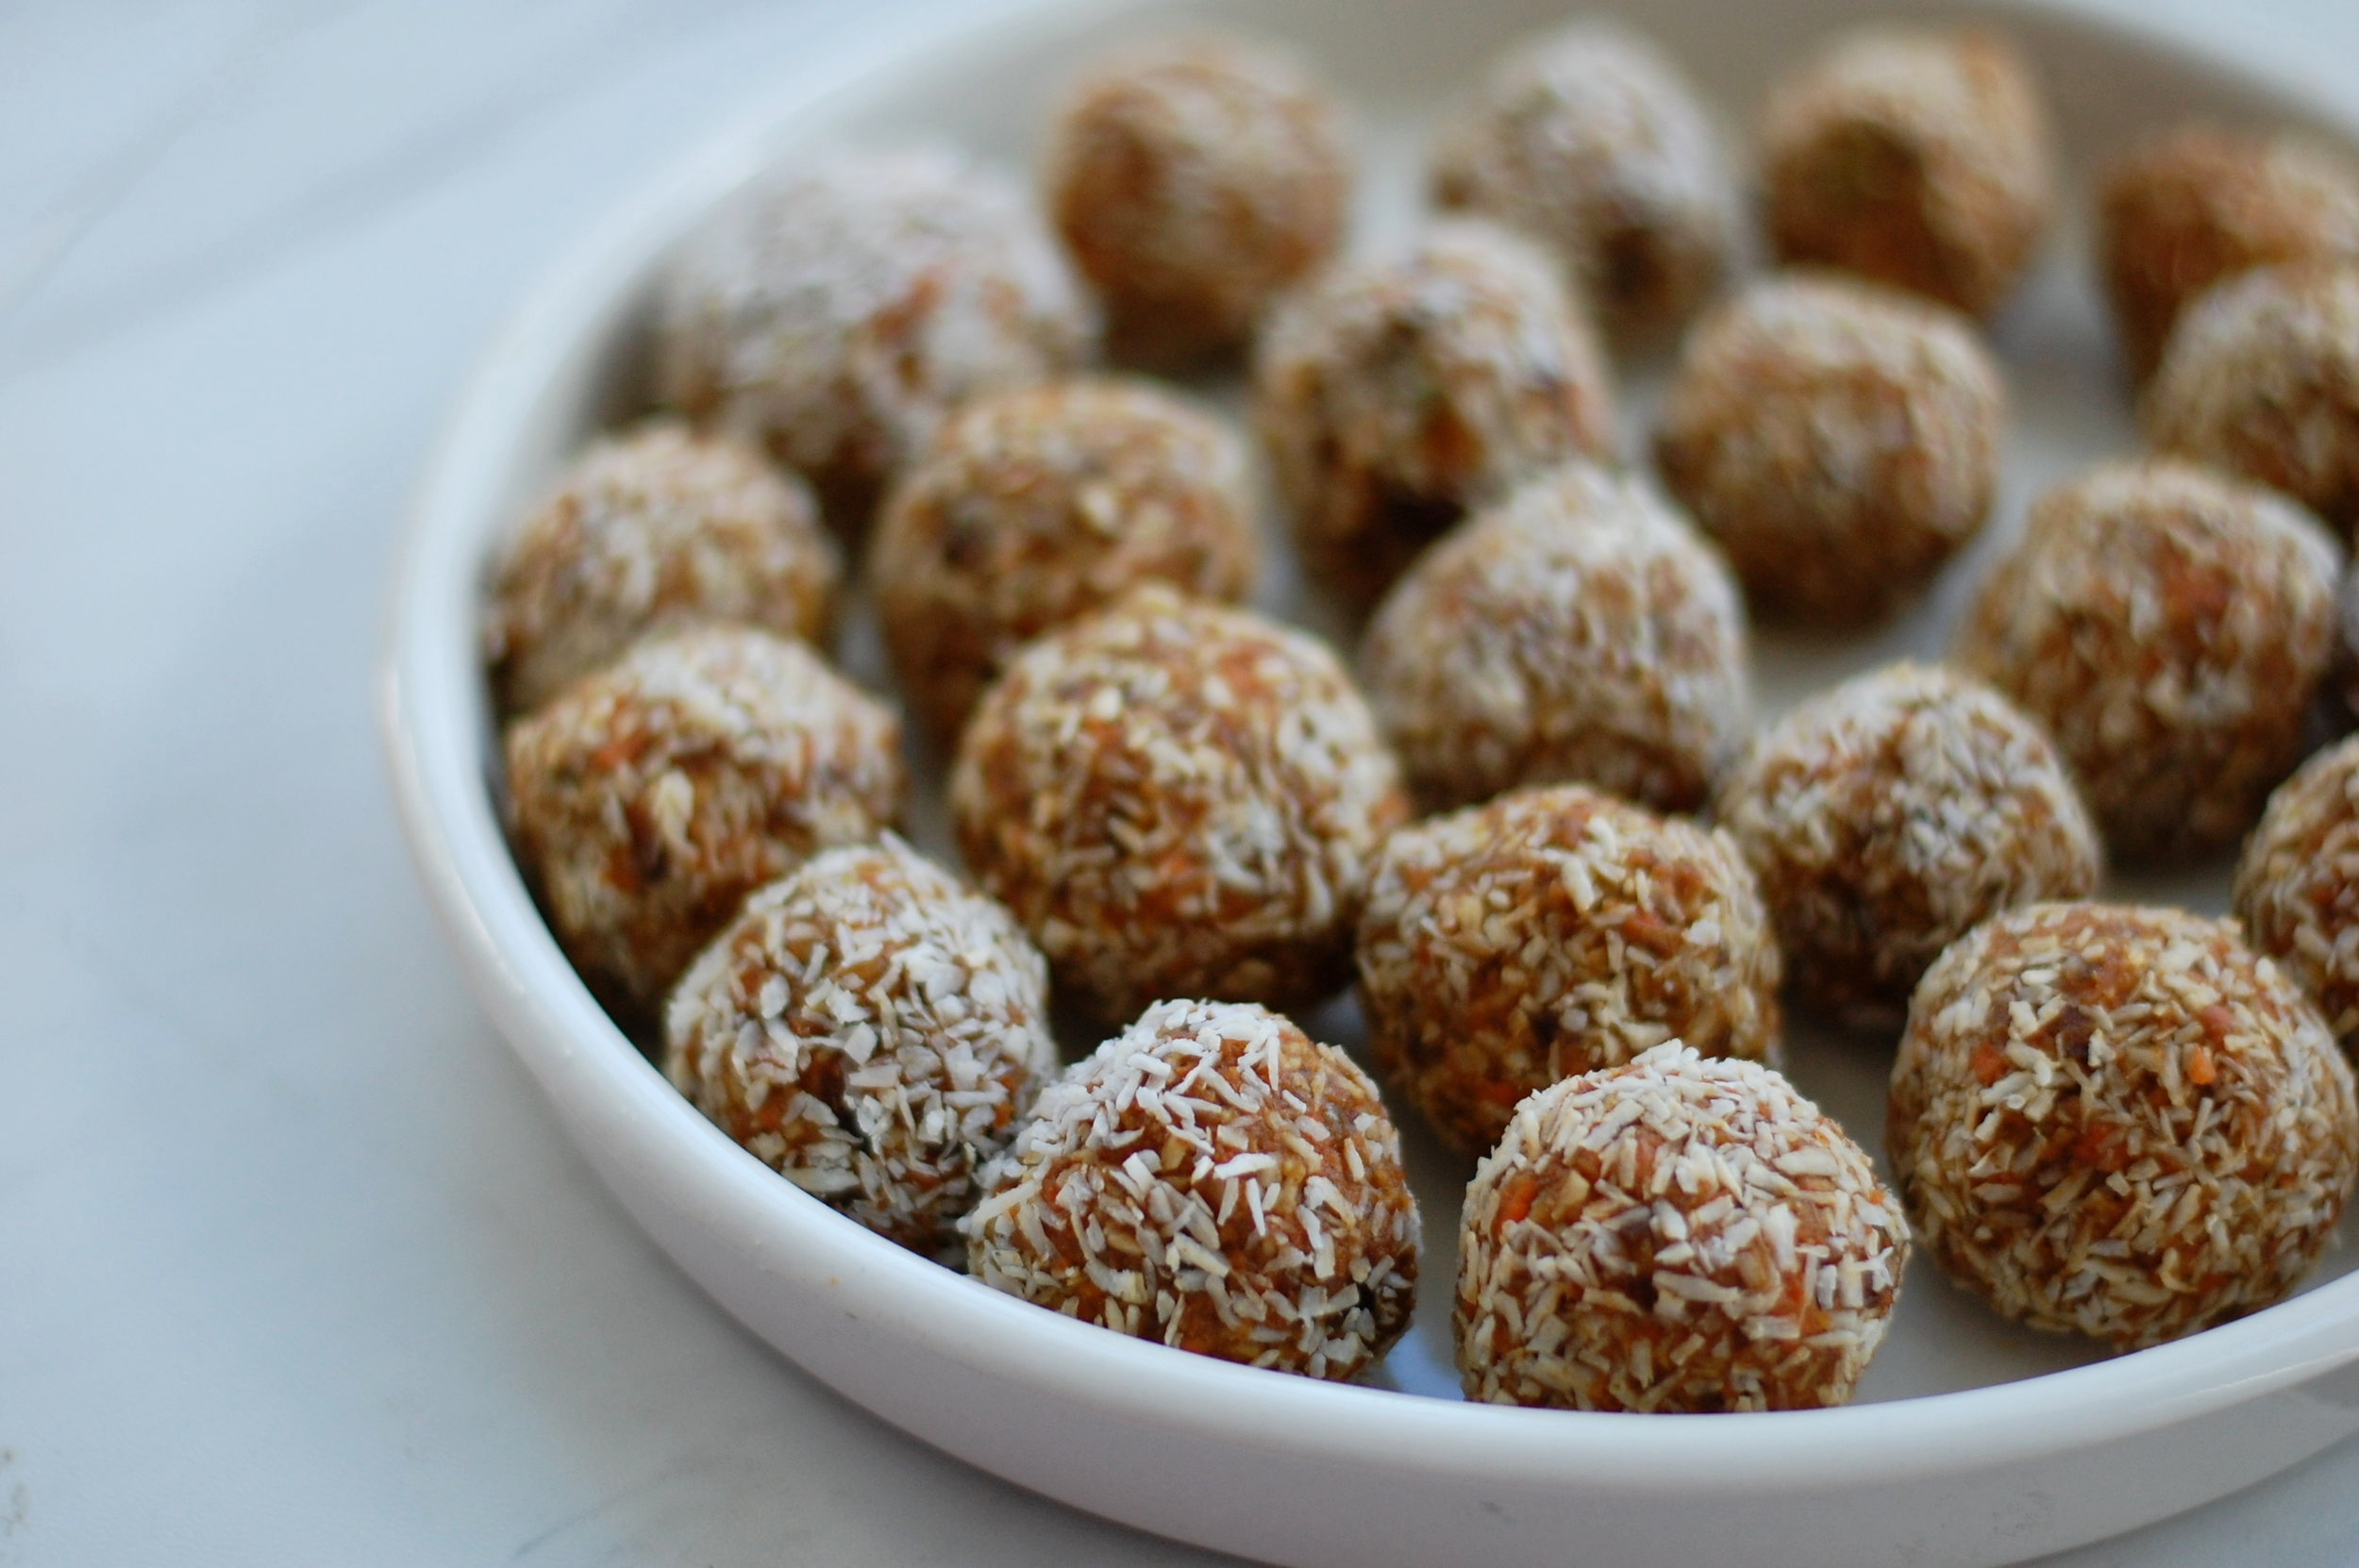 Carrot Cake Bliss Balls - Craving a good ol' slice of carrot cake but would rather skip out on the belly roll? Look no further, these Carrot Cake Bliss Balls from @AnaGoesFitpack a ton of flavor but without all the unnecessary sugar and not-so-go-for-you ingredients.